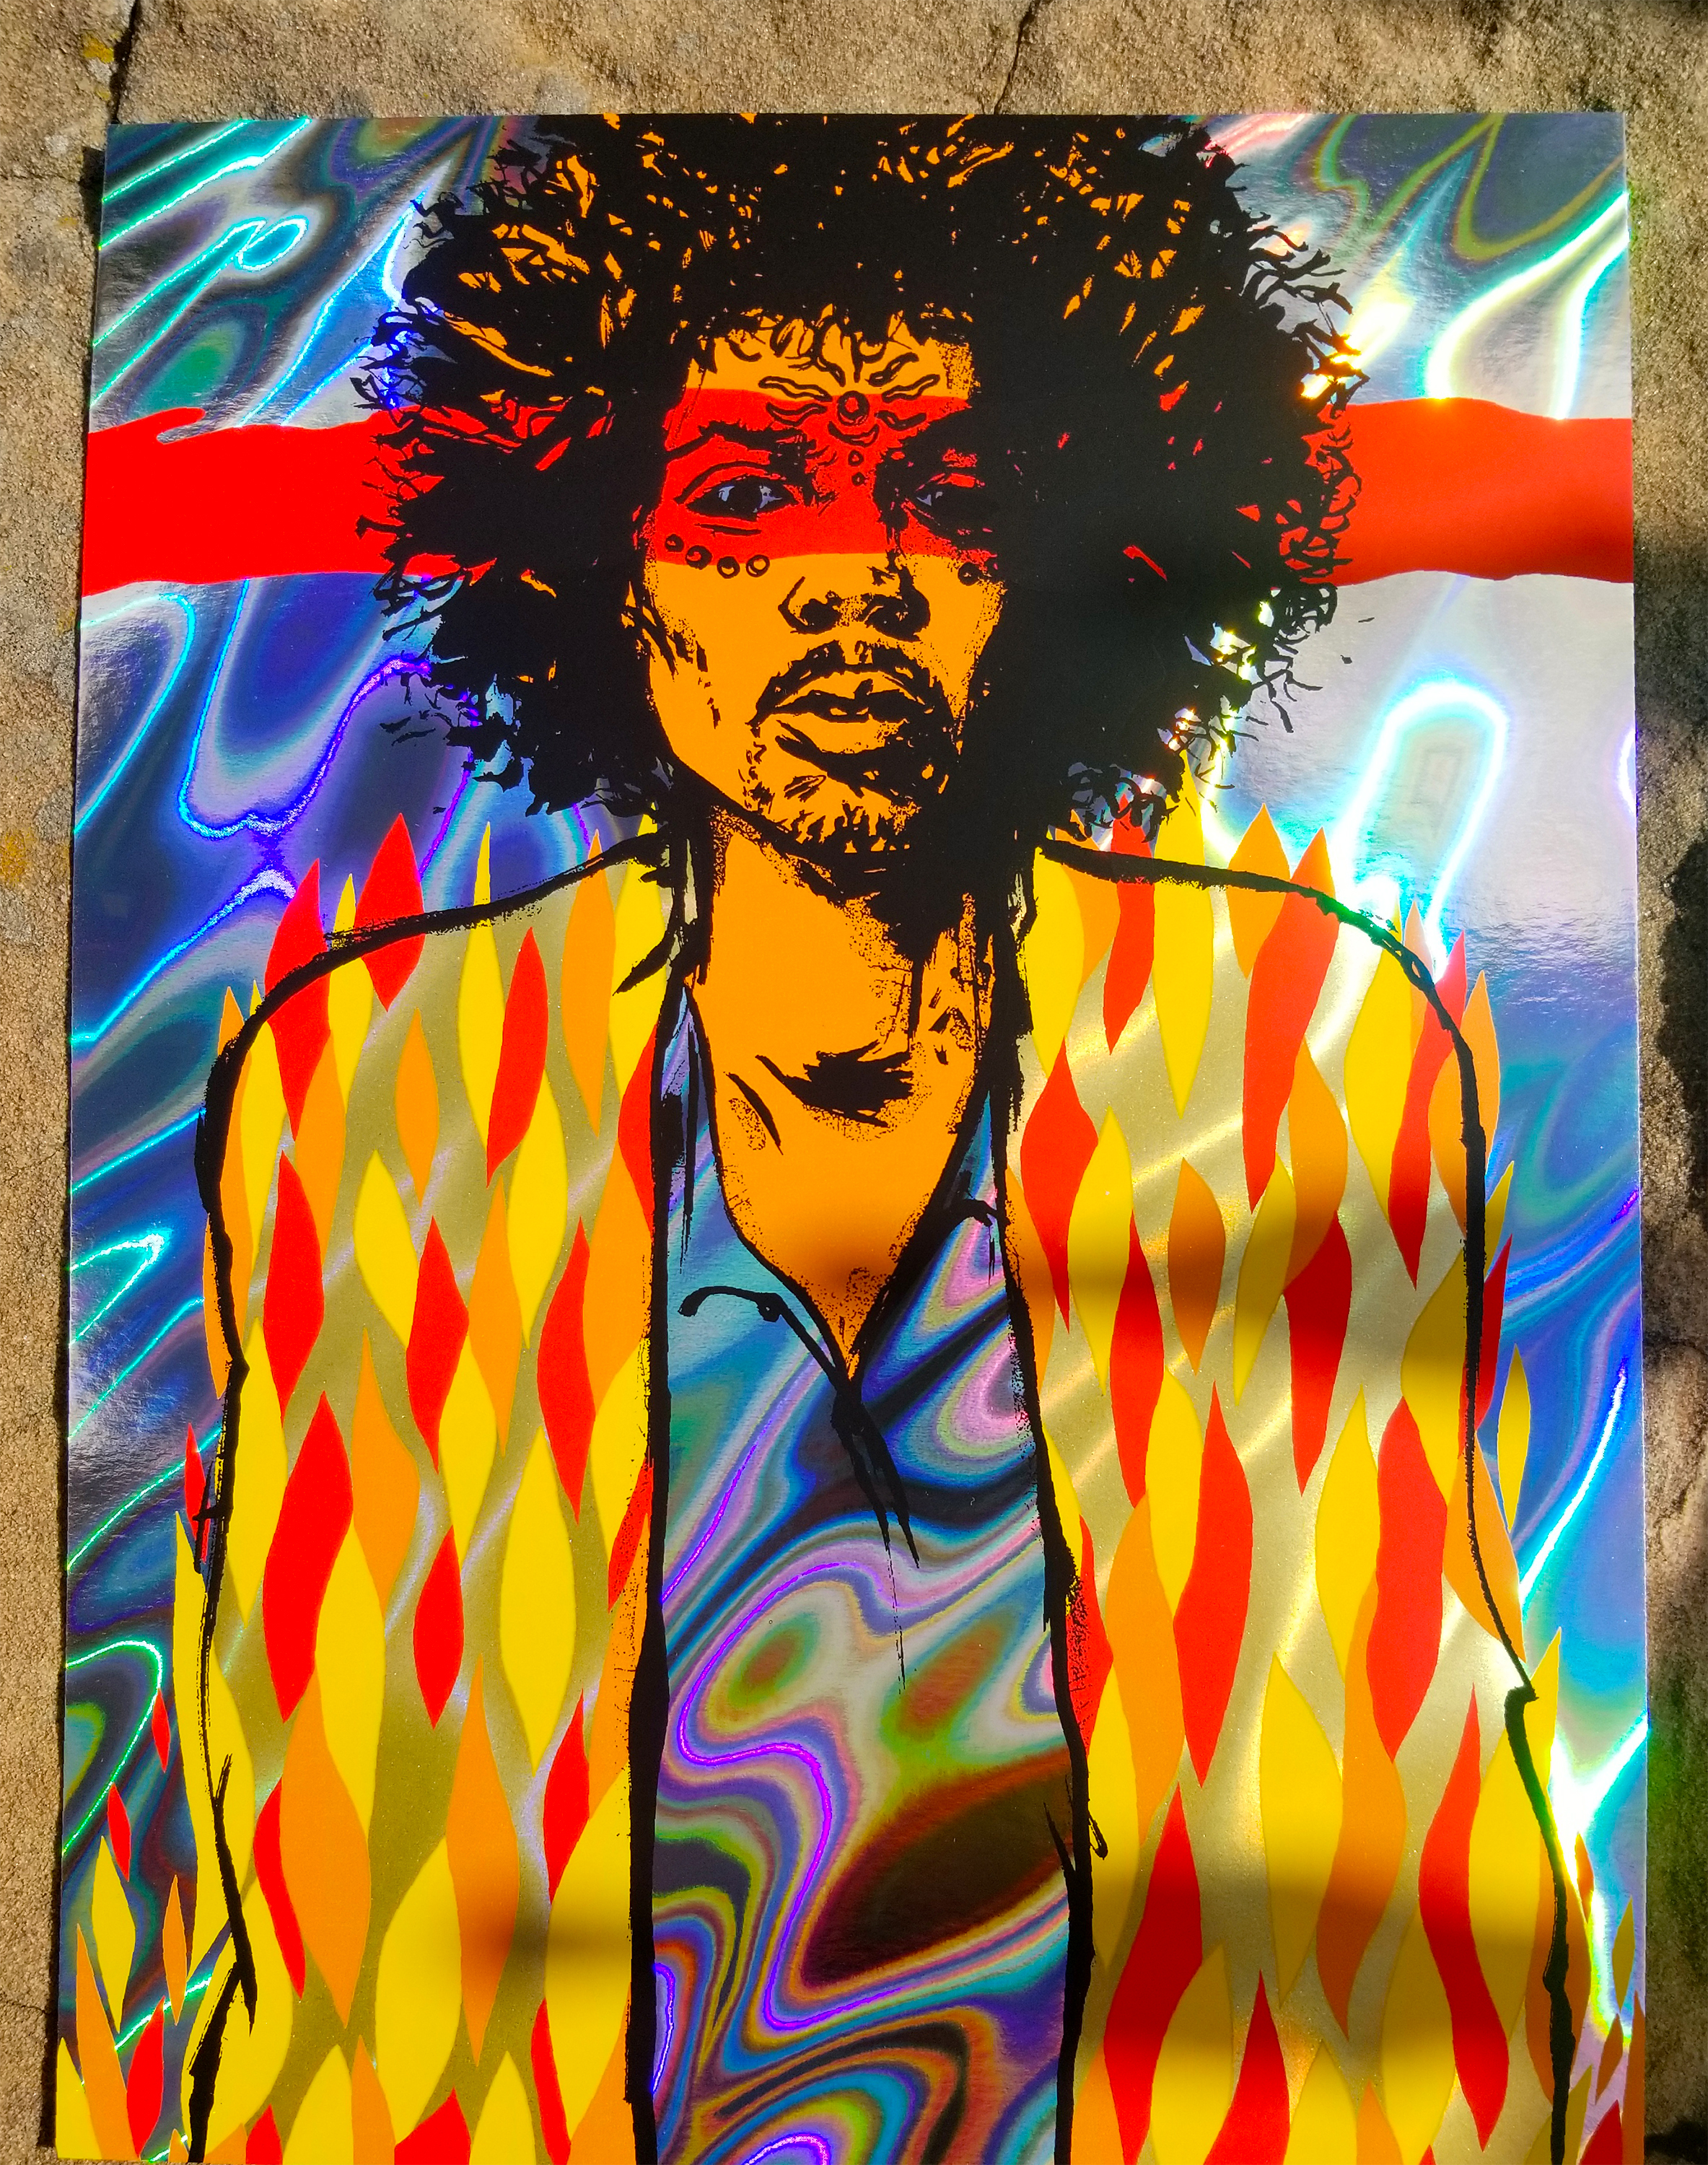 NEW - 'Voodoo' (Hendrix) Mini Print (VARIANTS)